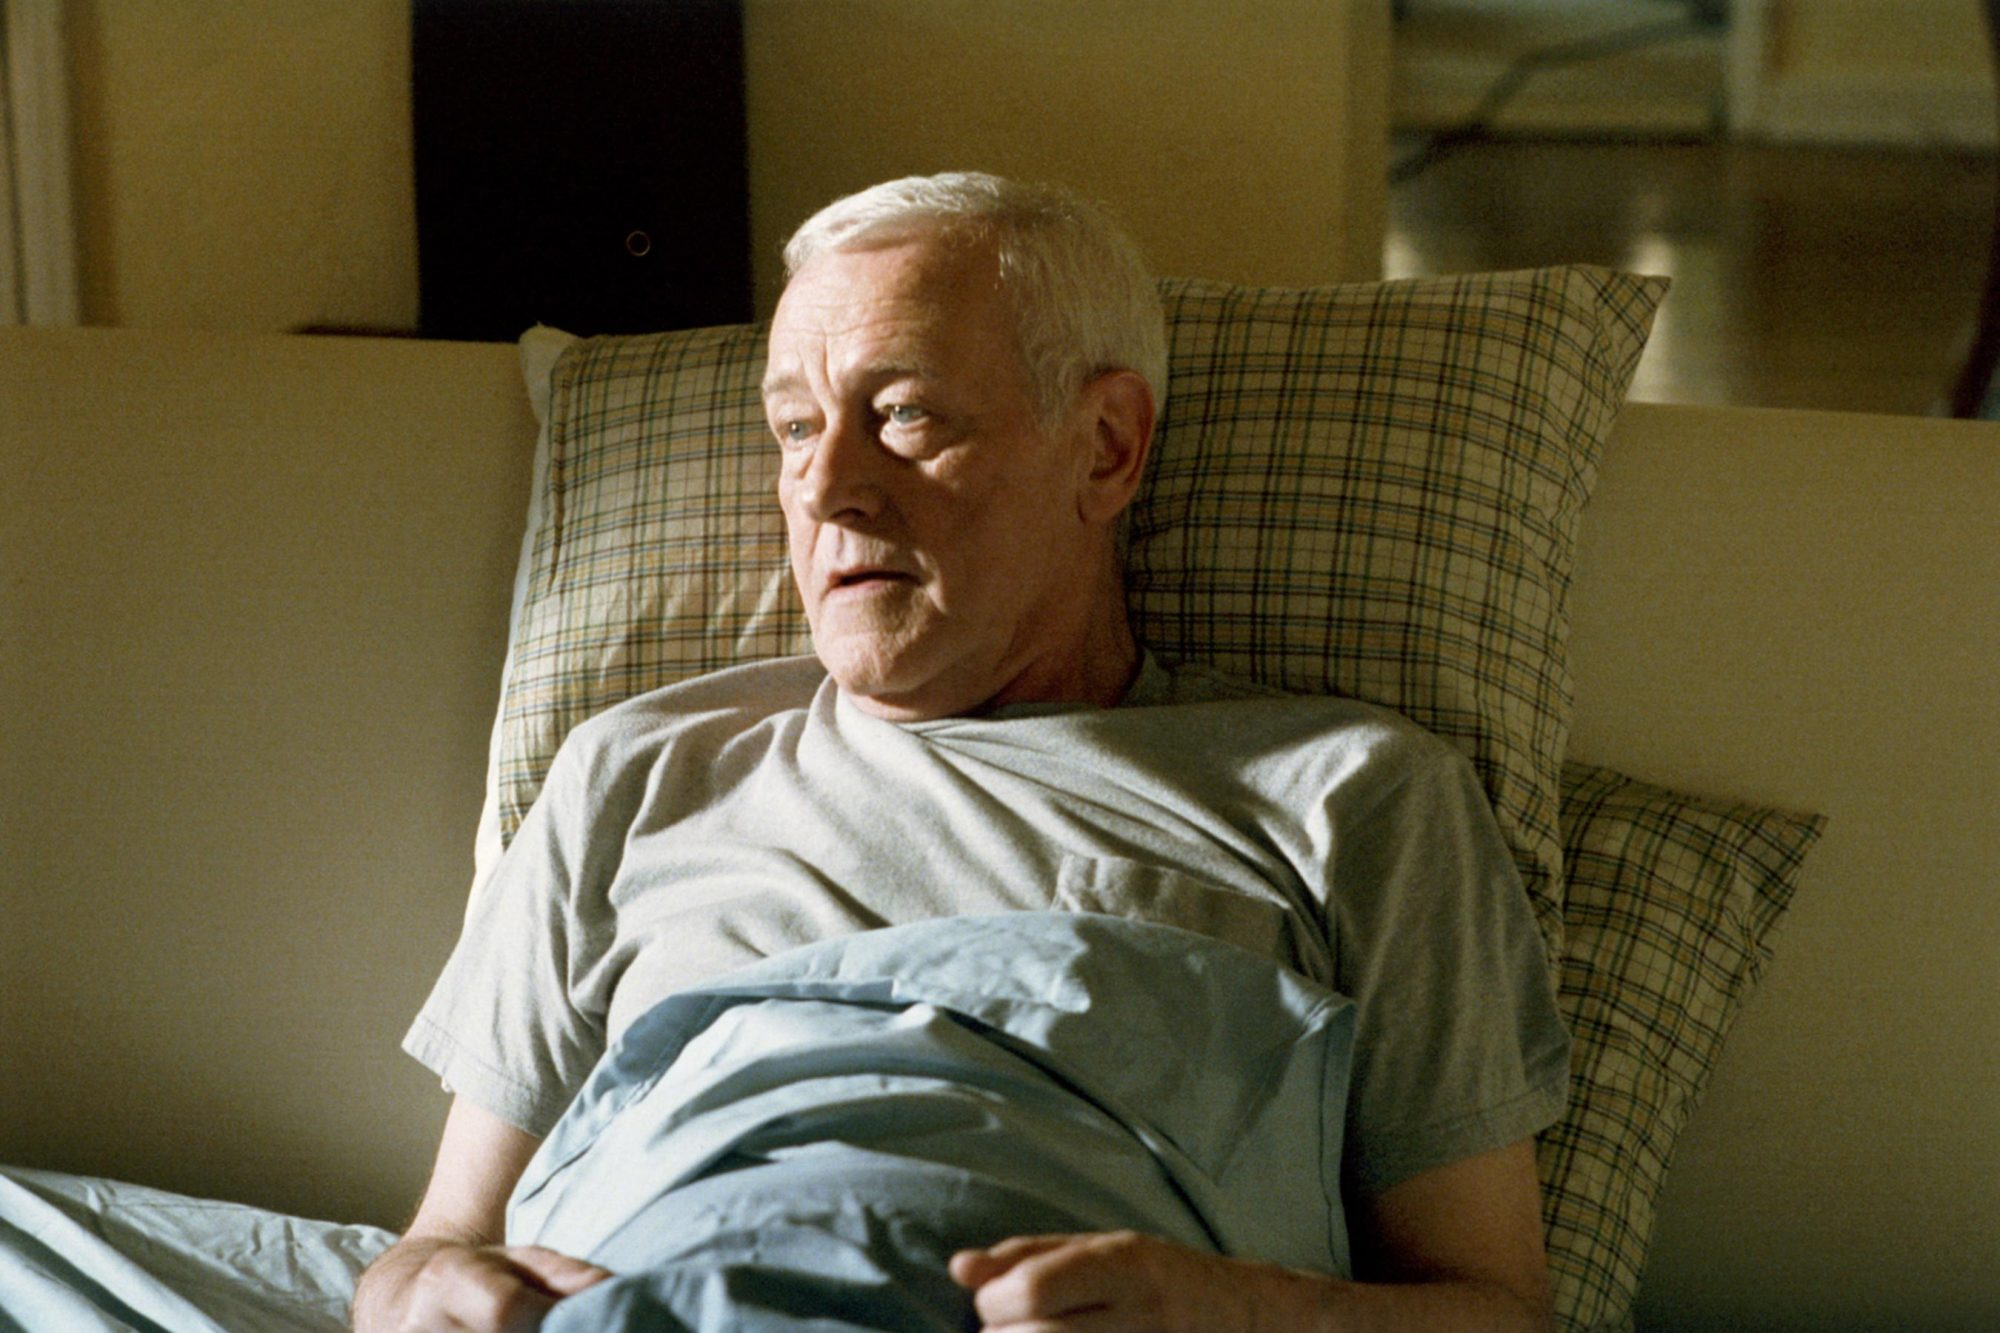 FATHERS AND SONS, John Mahoney, 2005, © SHOWTIME / Courtesy: Everett Collection